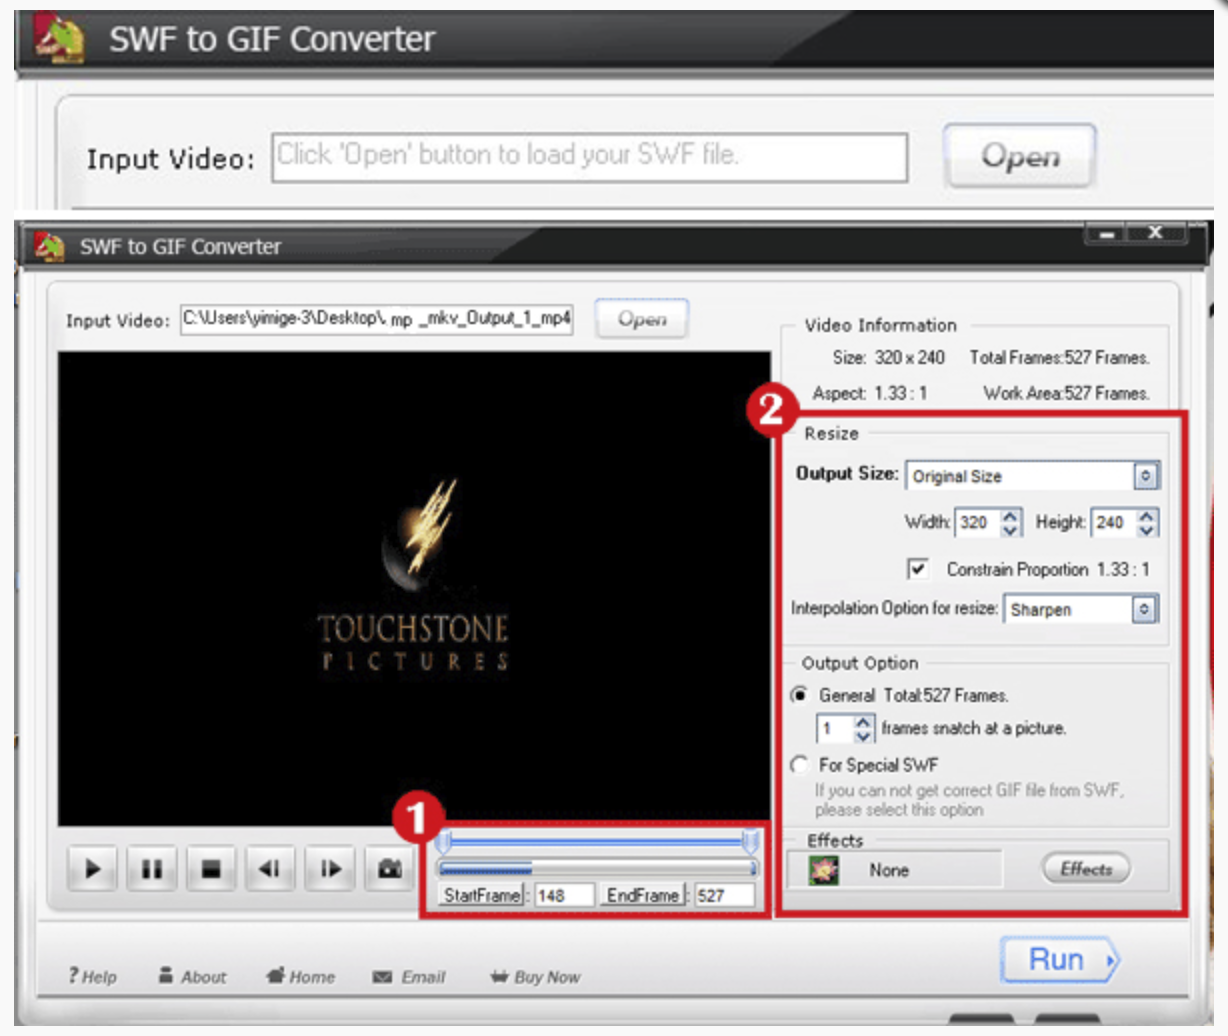 [Free Giveaway] Aoao SWF to GIF Converter v4.1 Registration Code to Convert SWF into GIF